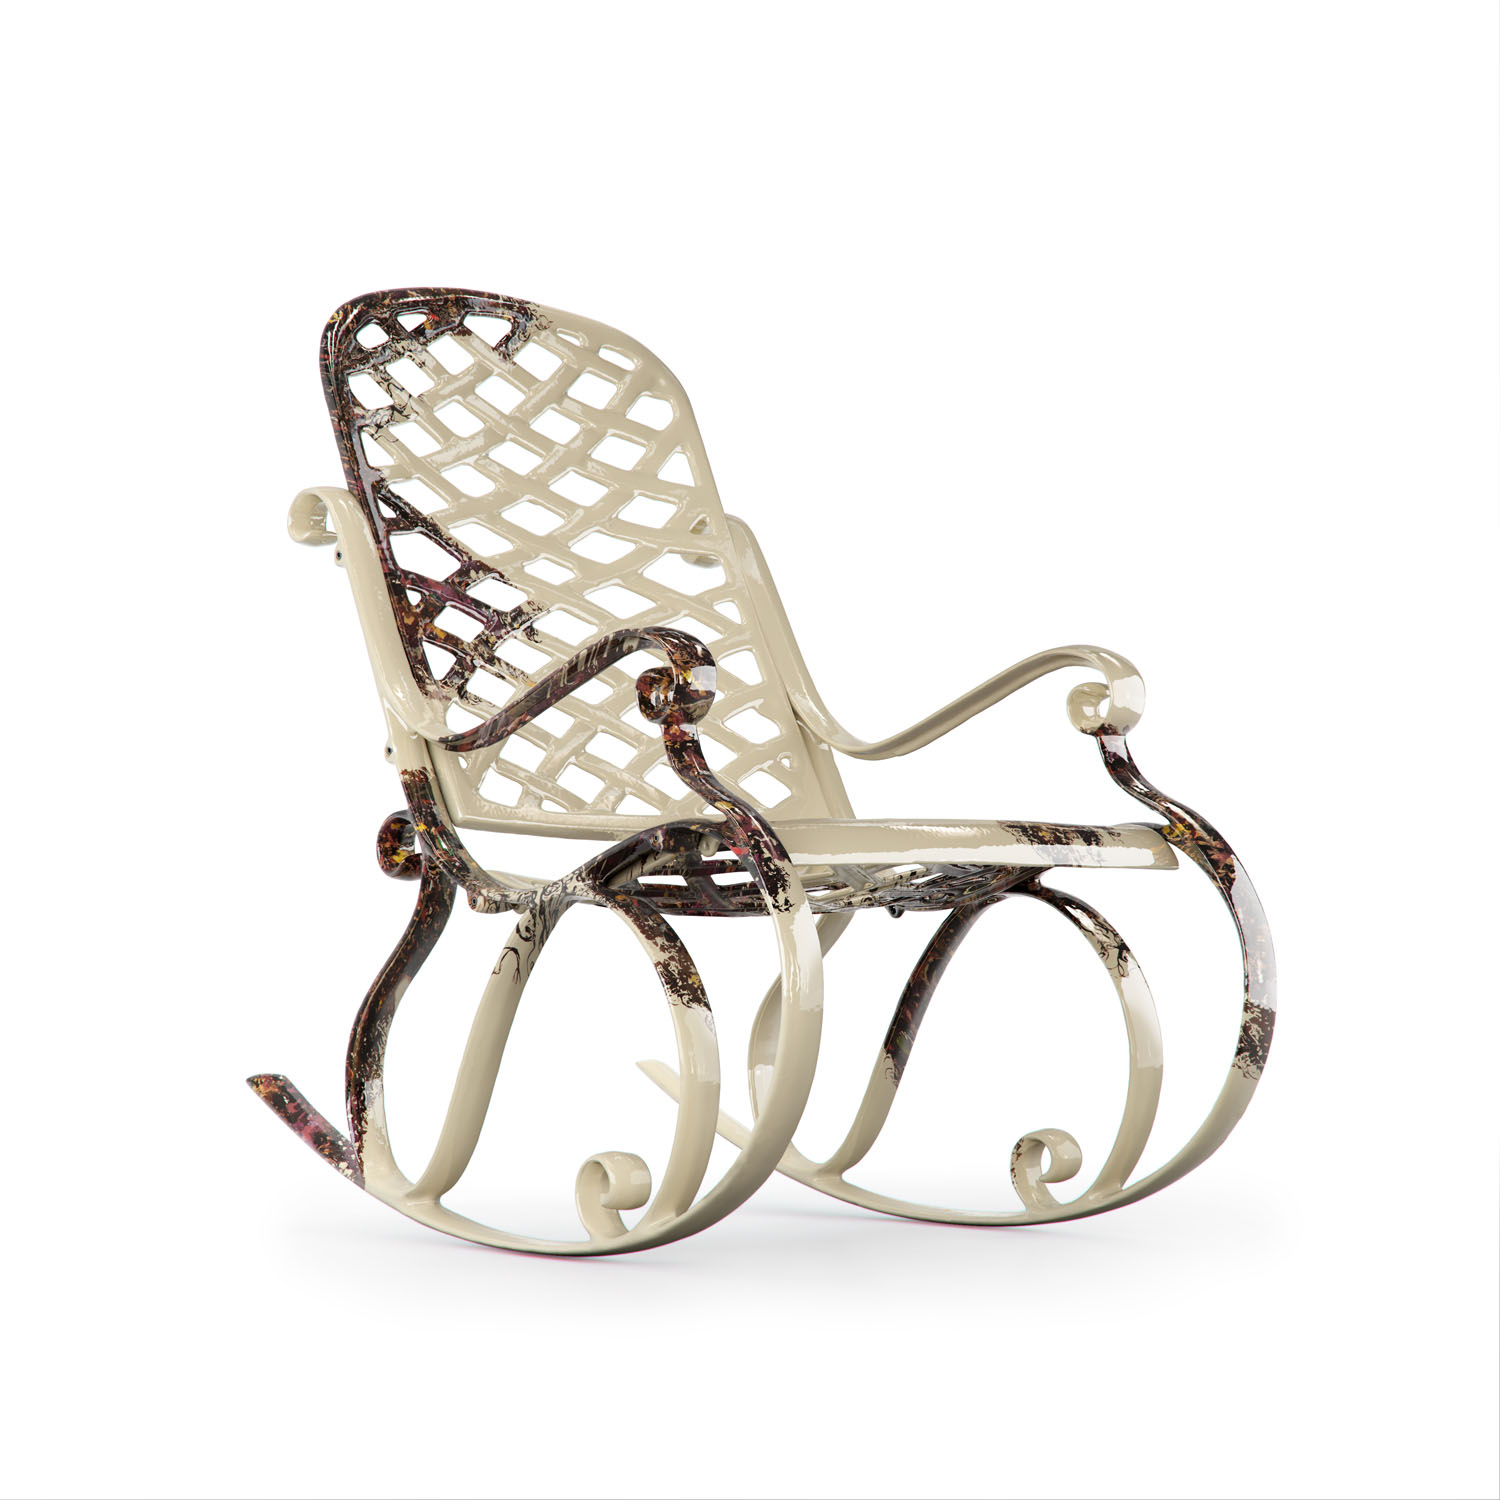 Habana rocking chair